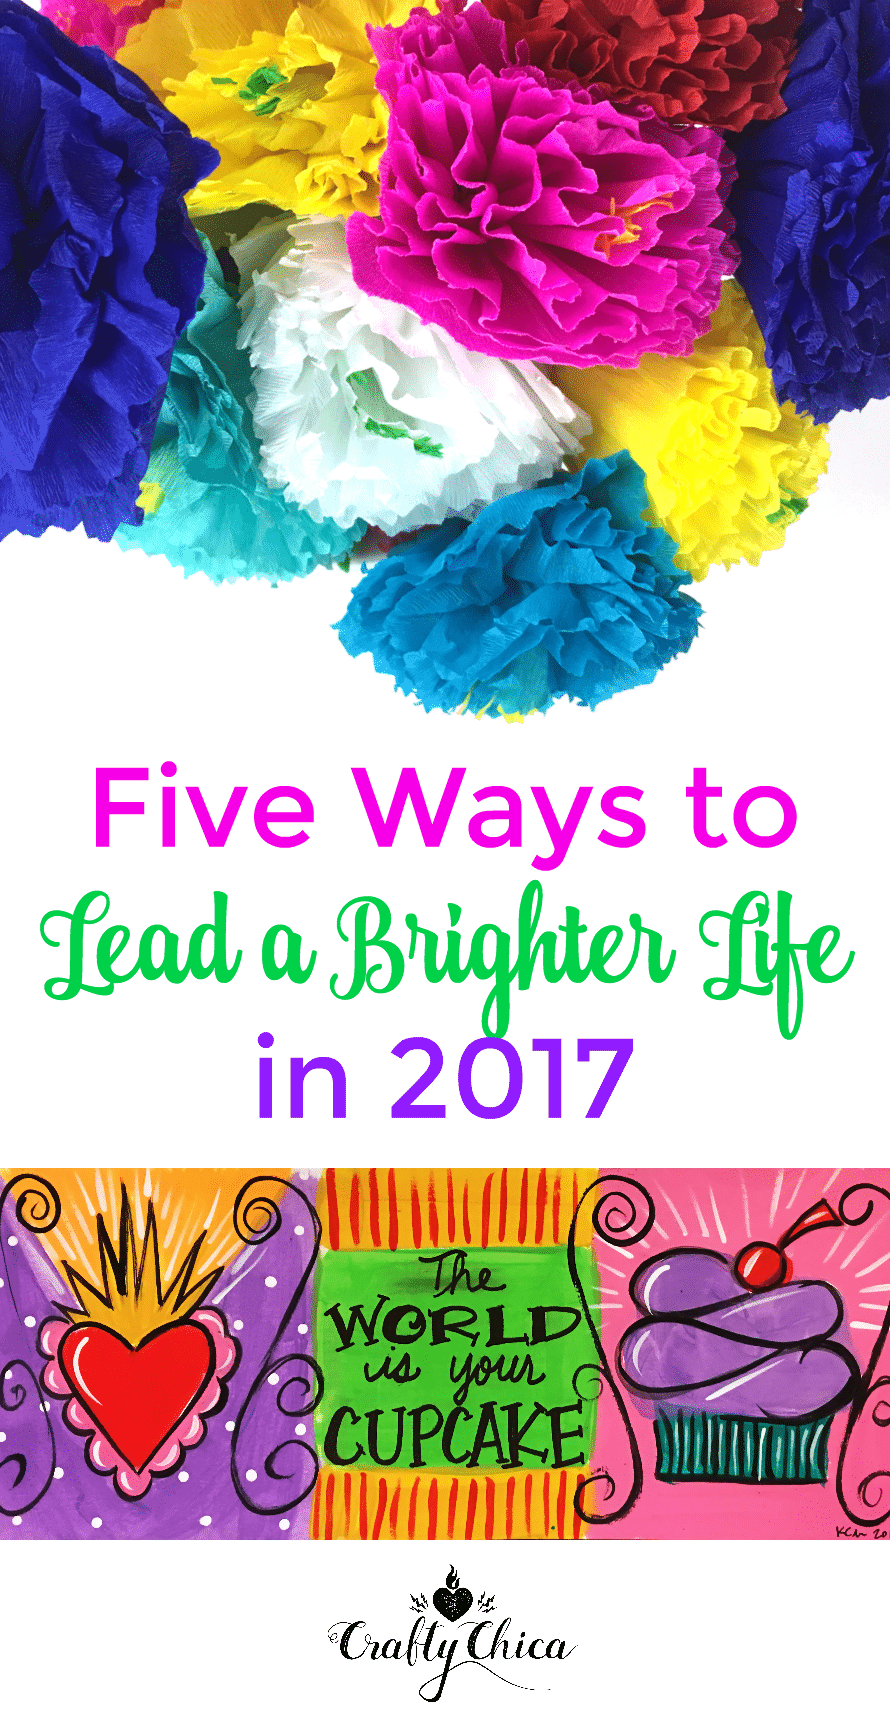 5 Ways to a Brighter life by Crafty Chica